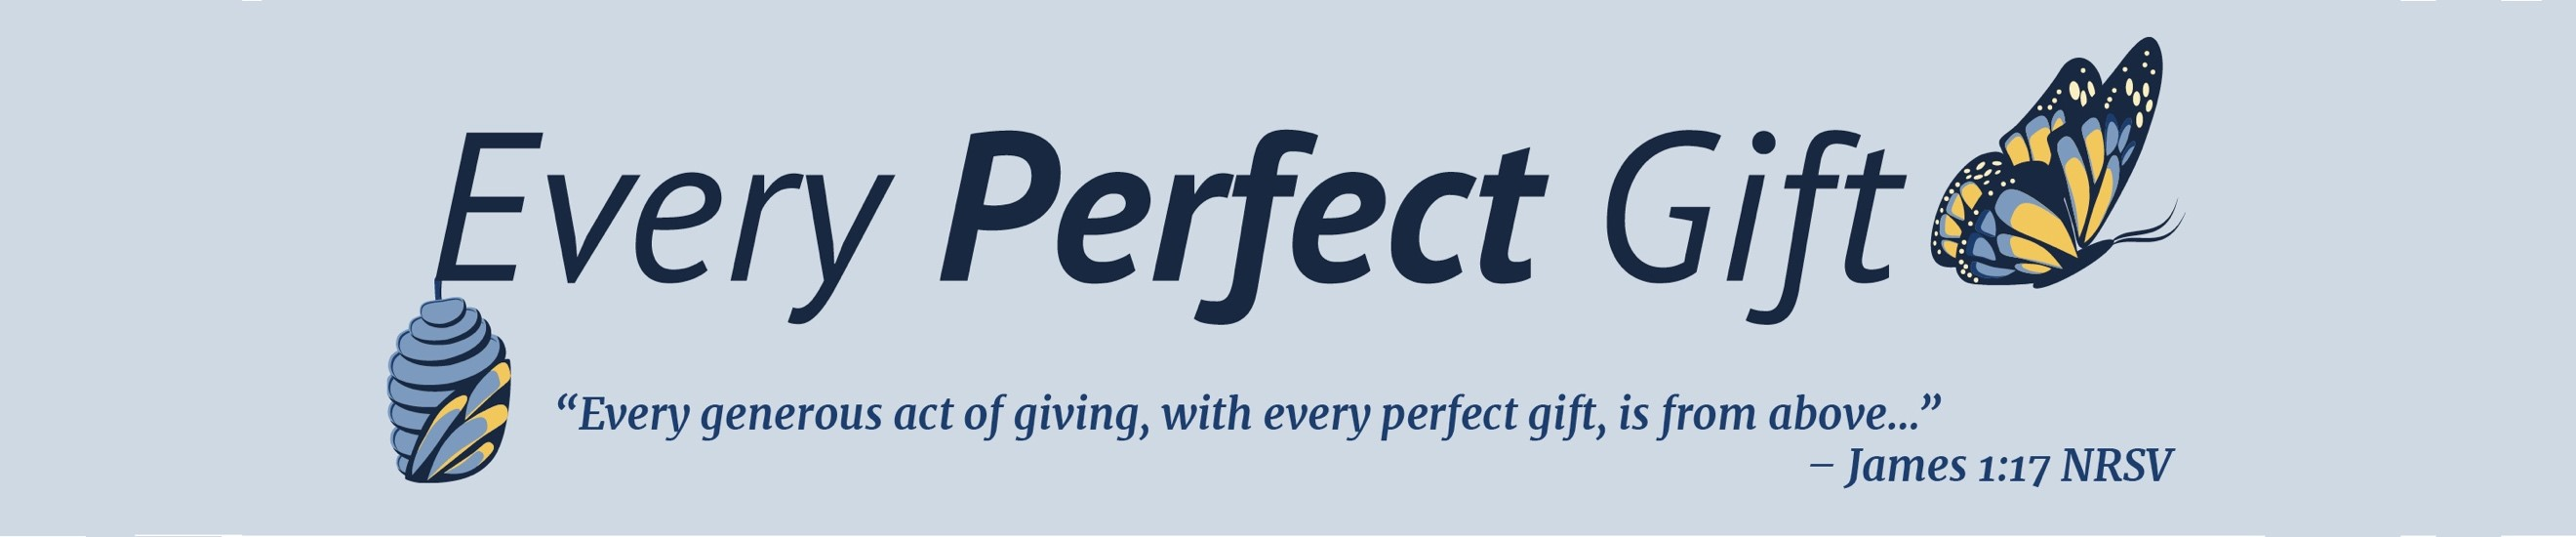 Every Perfect Gift Logo3 | Church of the Holy Comforter